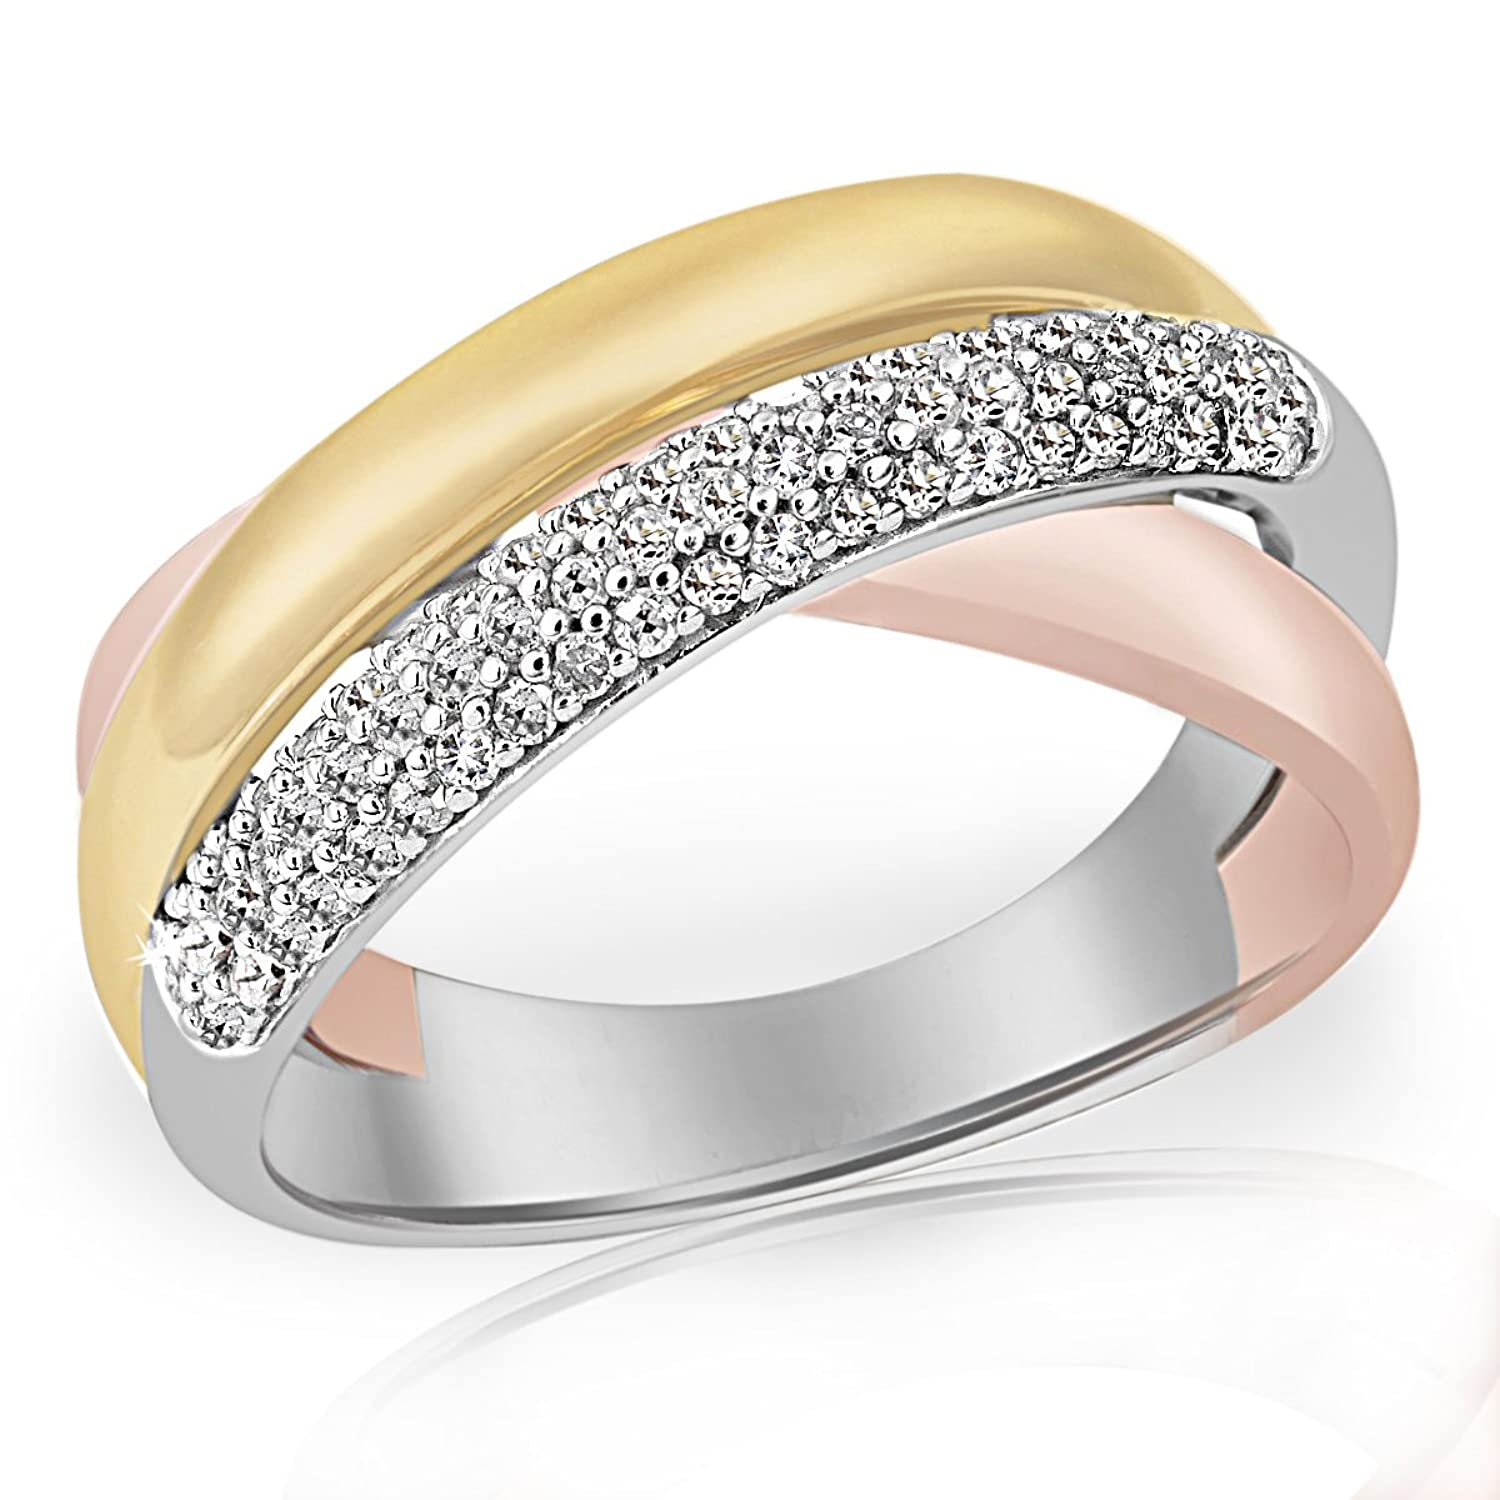 Goldmaid Damen-Ring Pavee Tricolor 375 Gold 62 Diamanten 0,33 ct. Pa R4933TR schenken